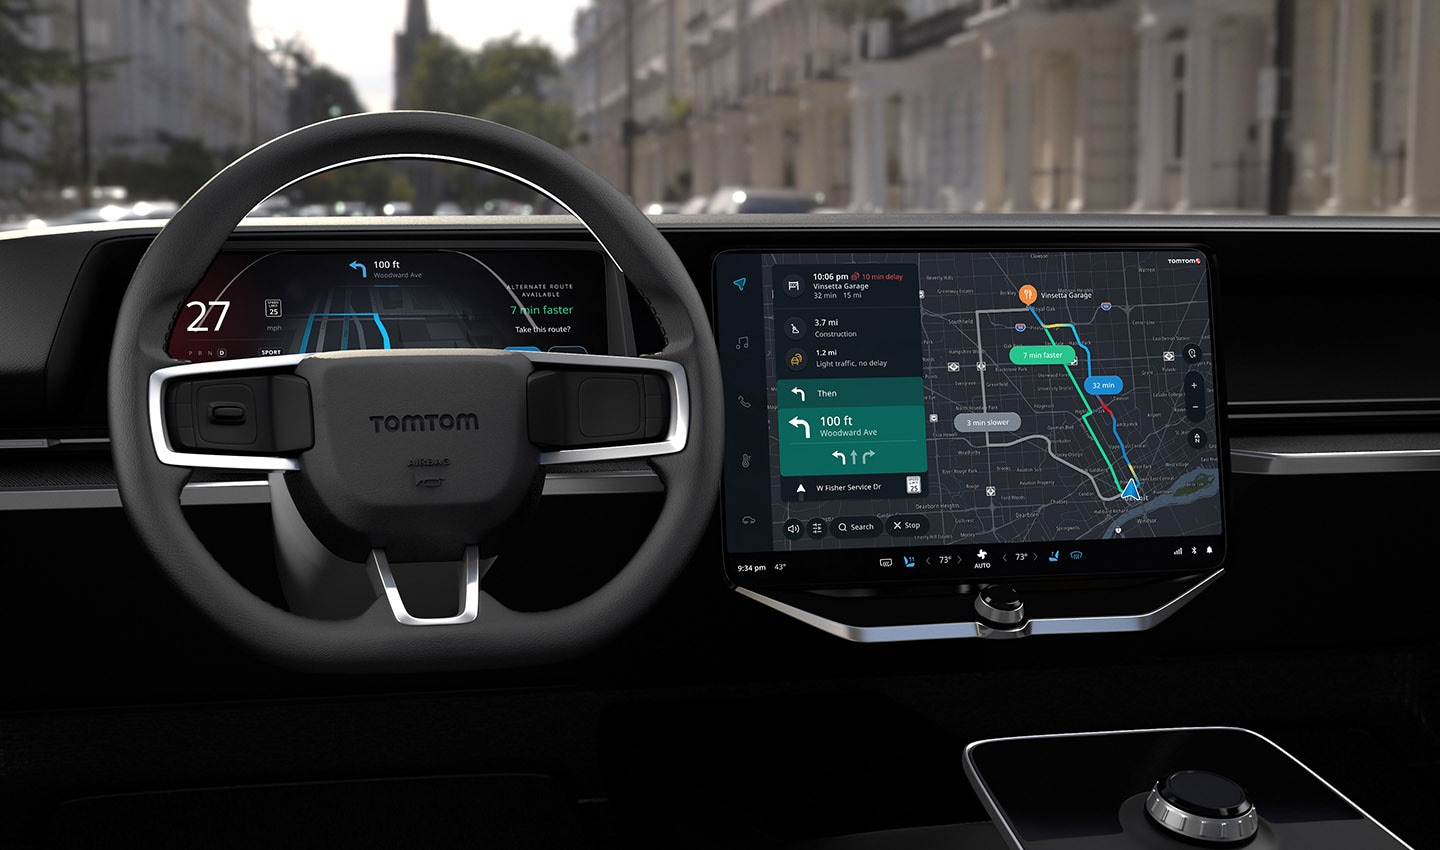 With detailed traffic flow data, embedded navigation systems can calculate ideal routes and precise arrival times